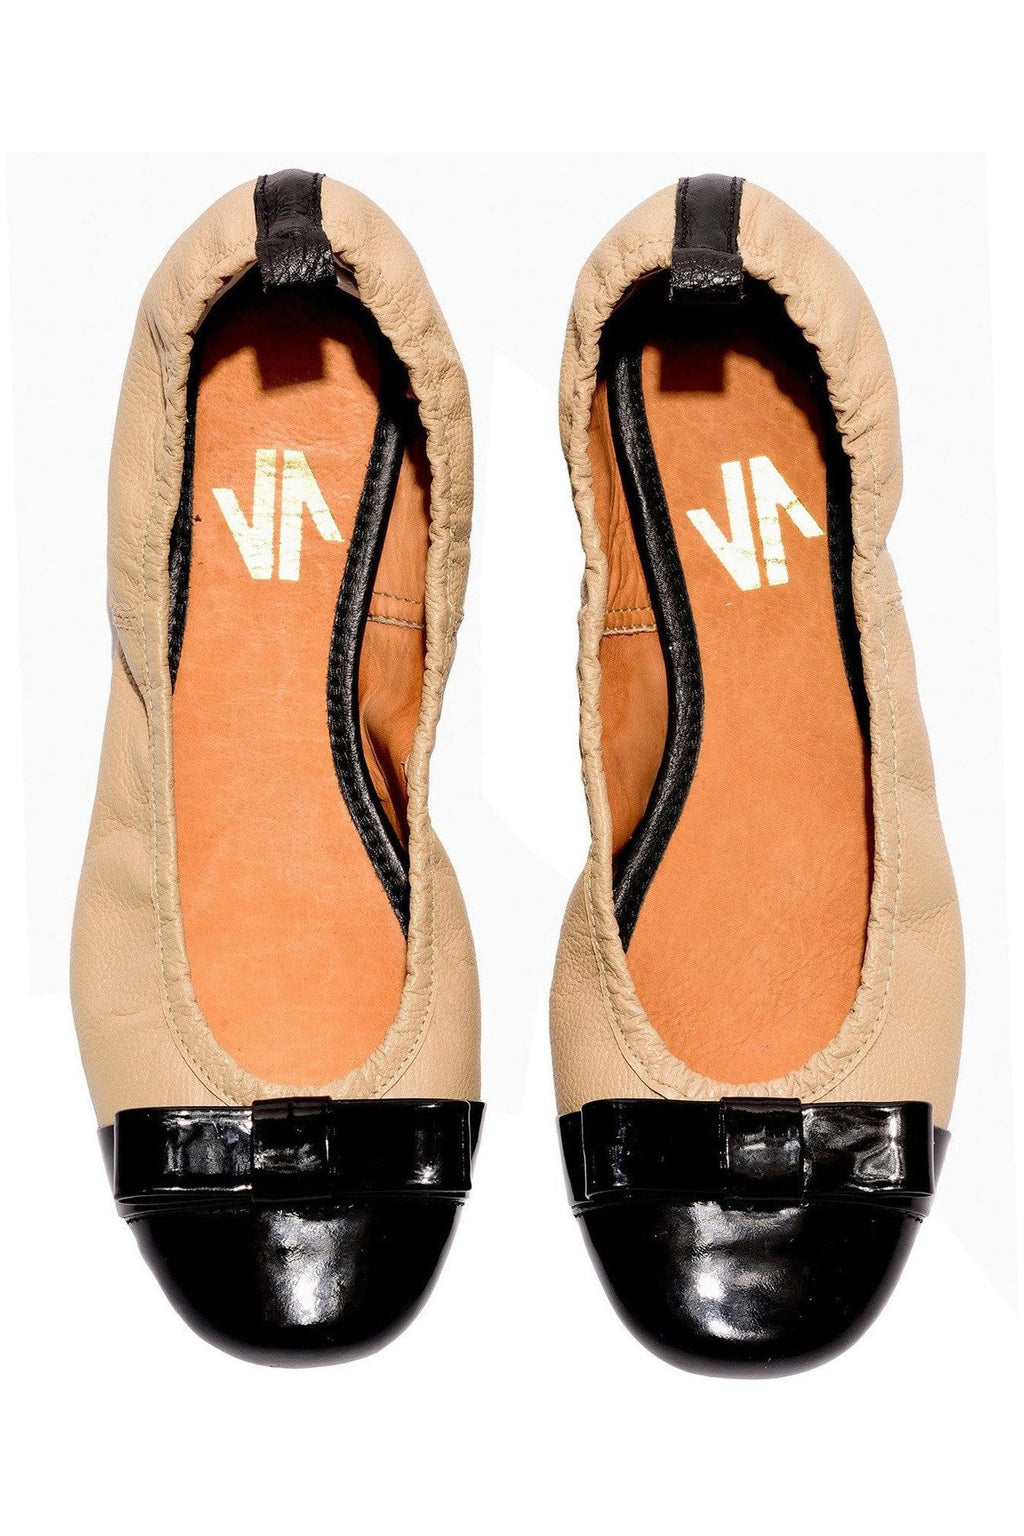 Columbian Leather Ballerina Flats in Sand - Himelhoch's